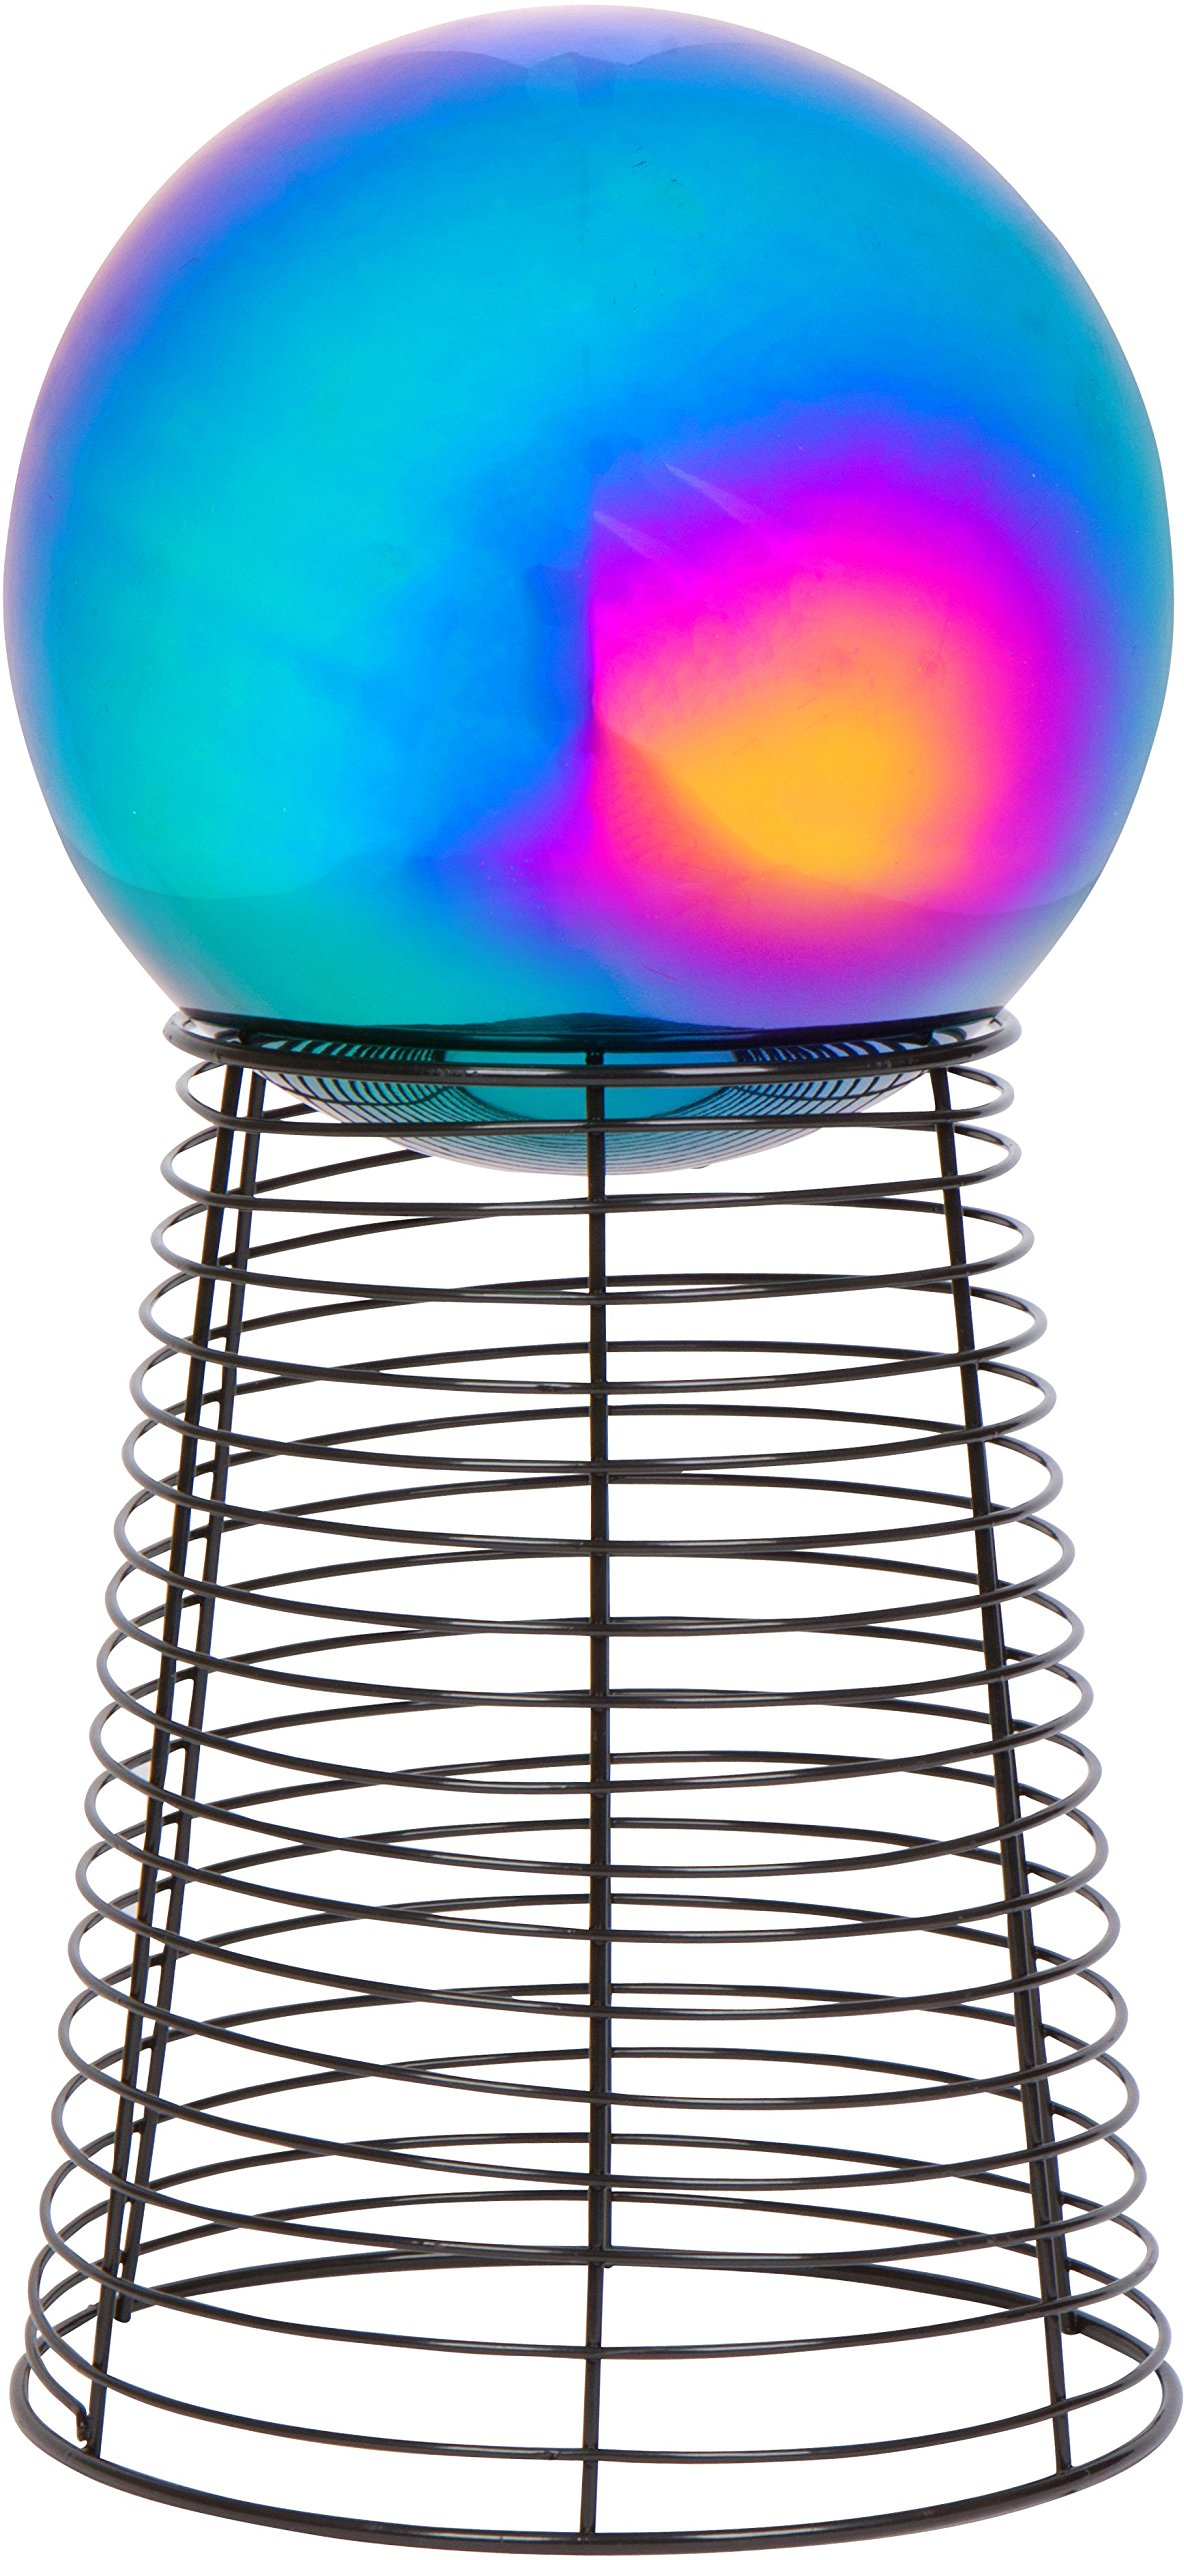 "12"" Metal Gazing Ball Stand & 8"" Gazing Ball (Rainbow) by Trademark Innovations"